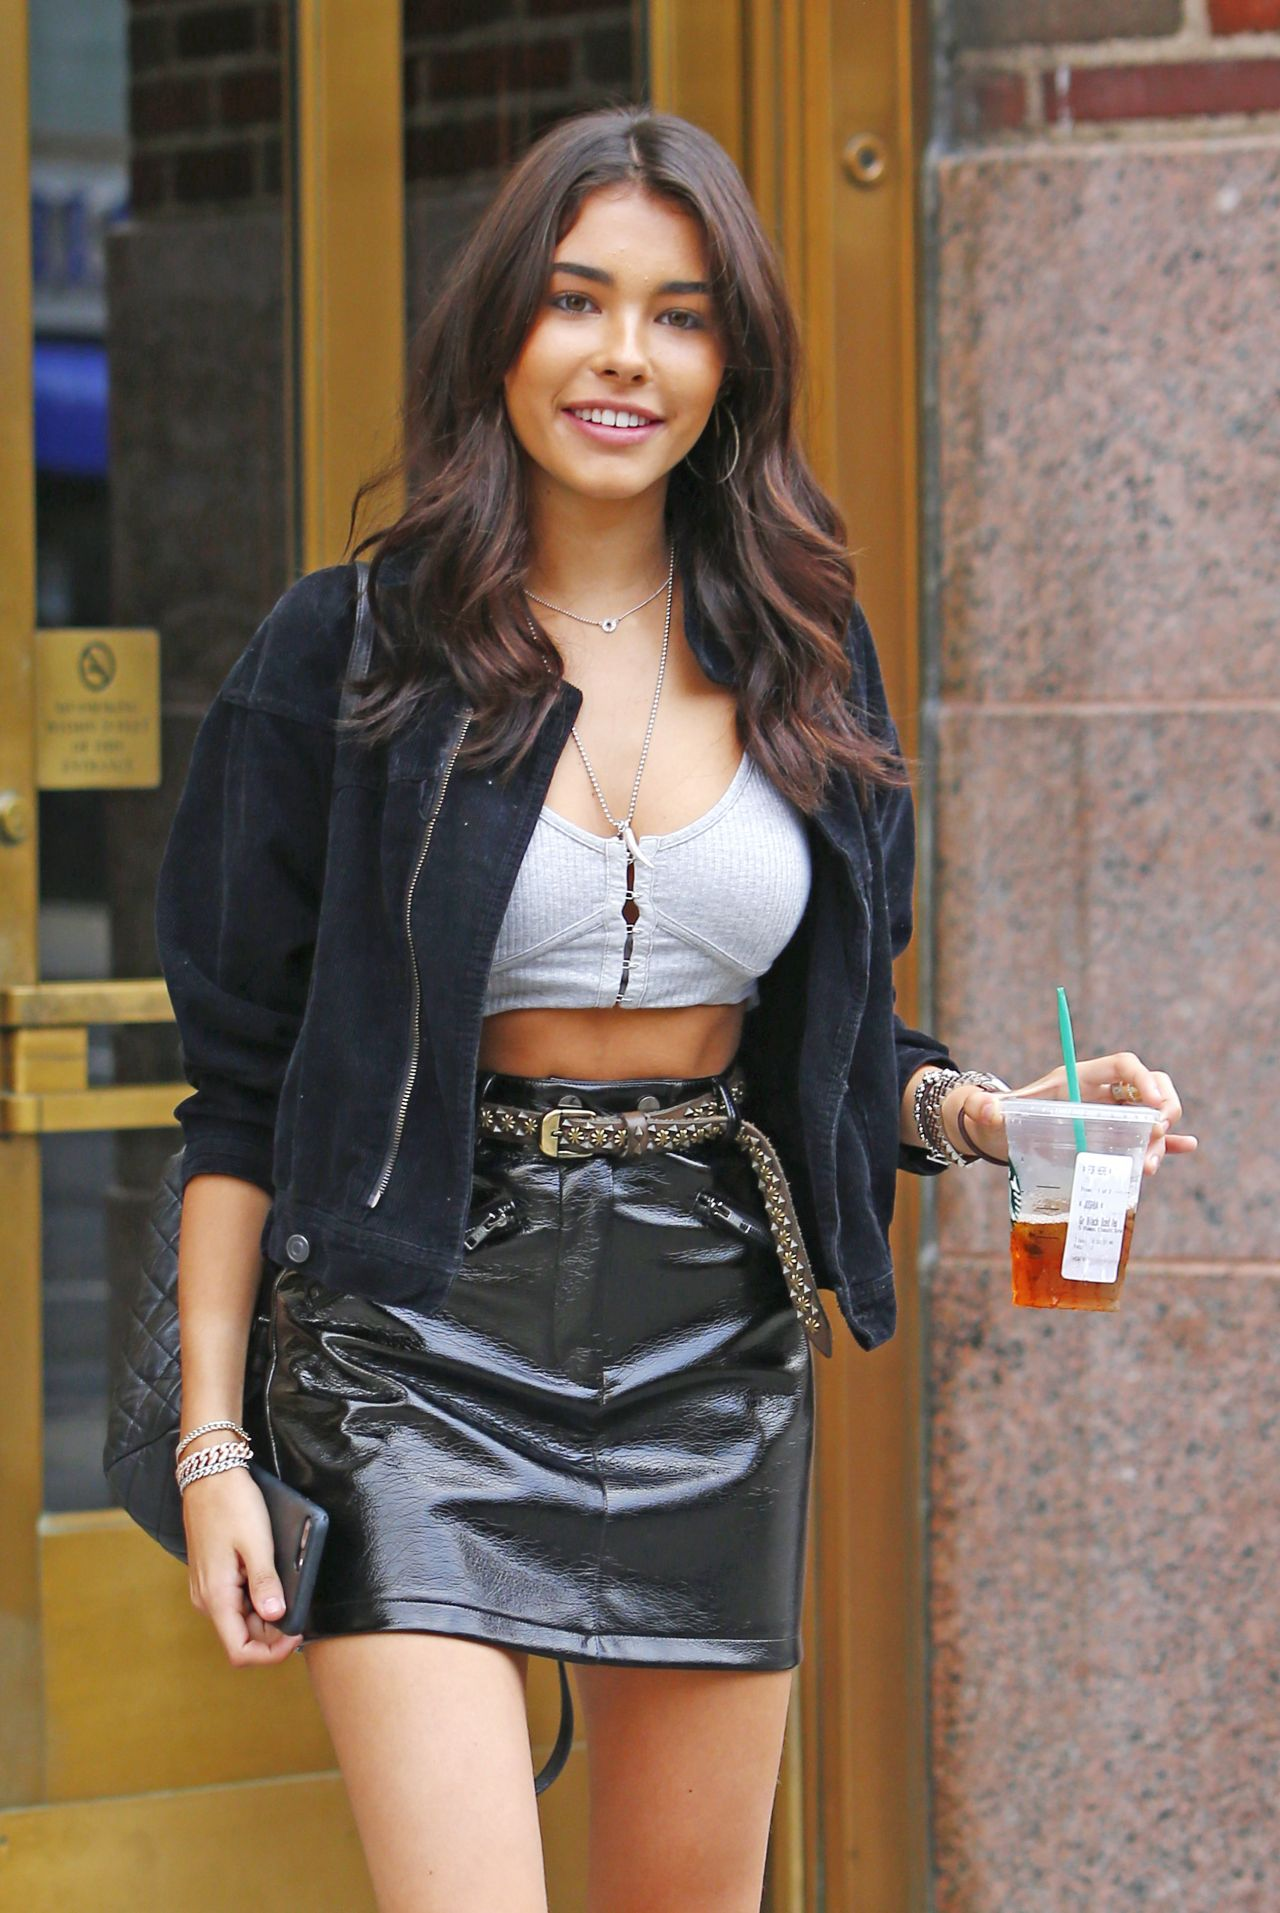 Madison Beer Wears Leather Mini Skirt - Exiting Z100 in ...